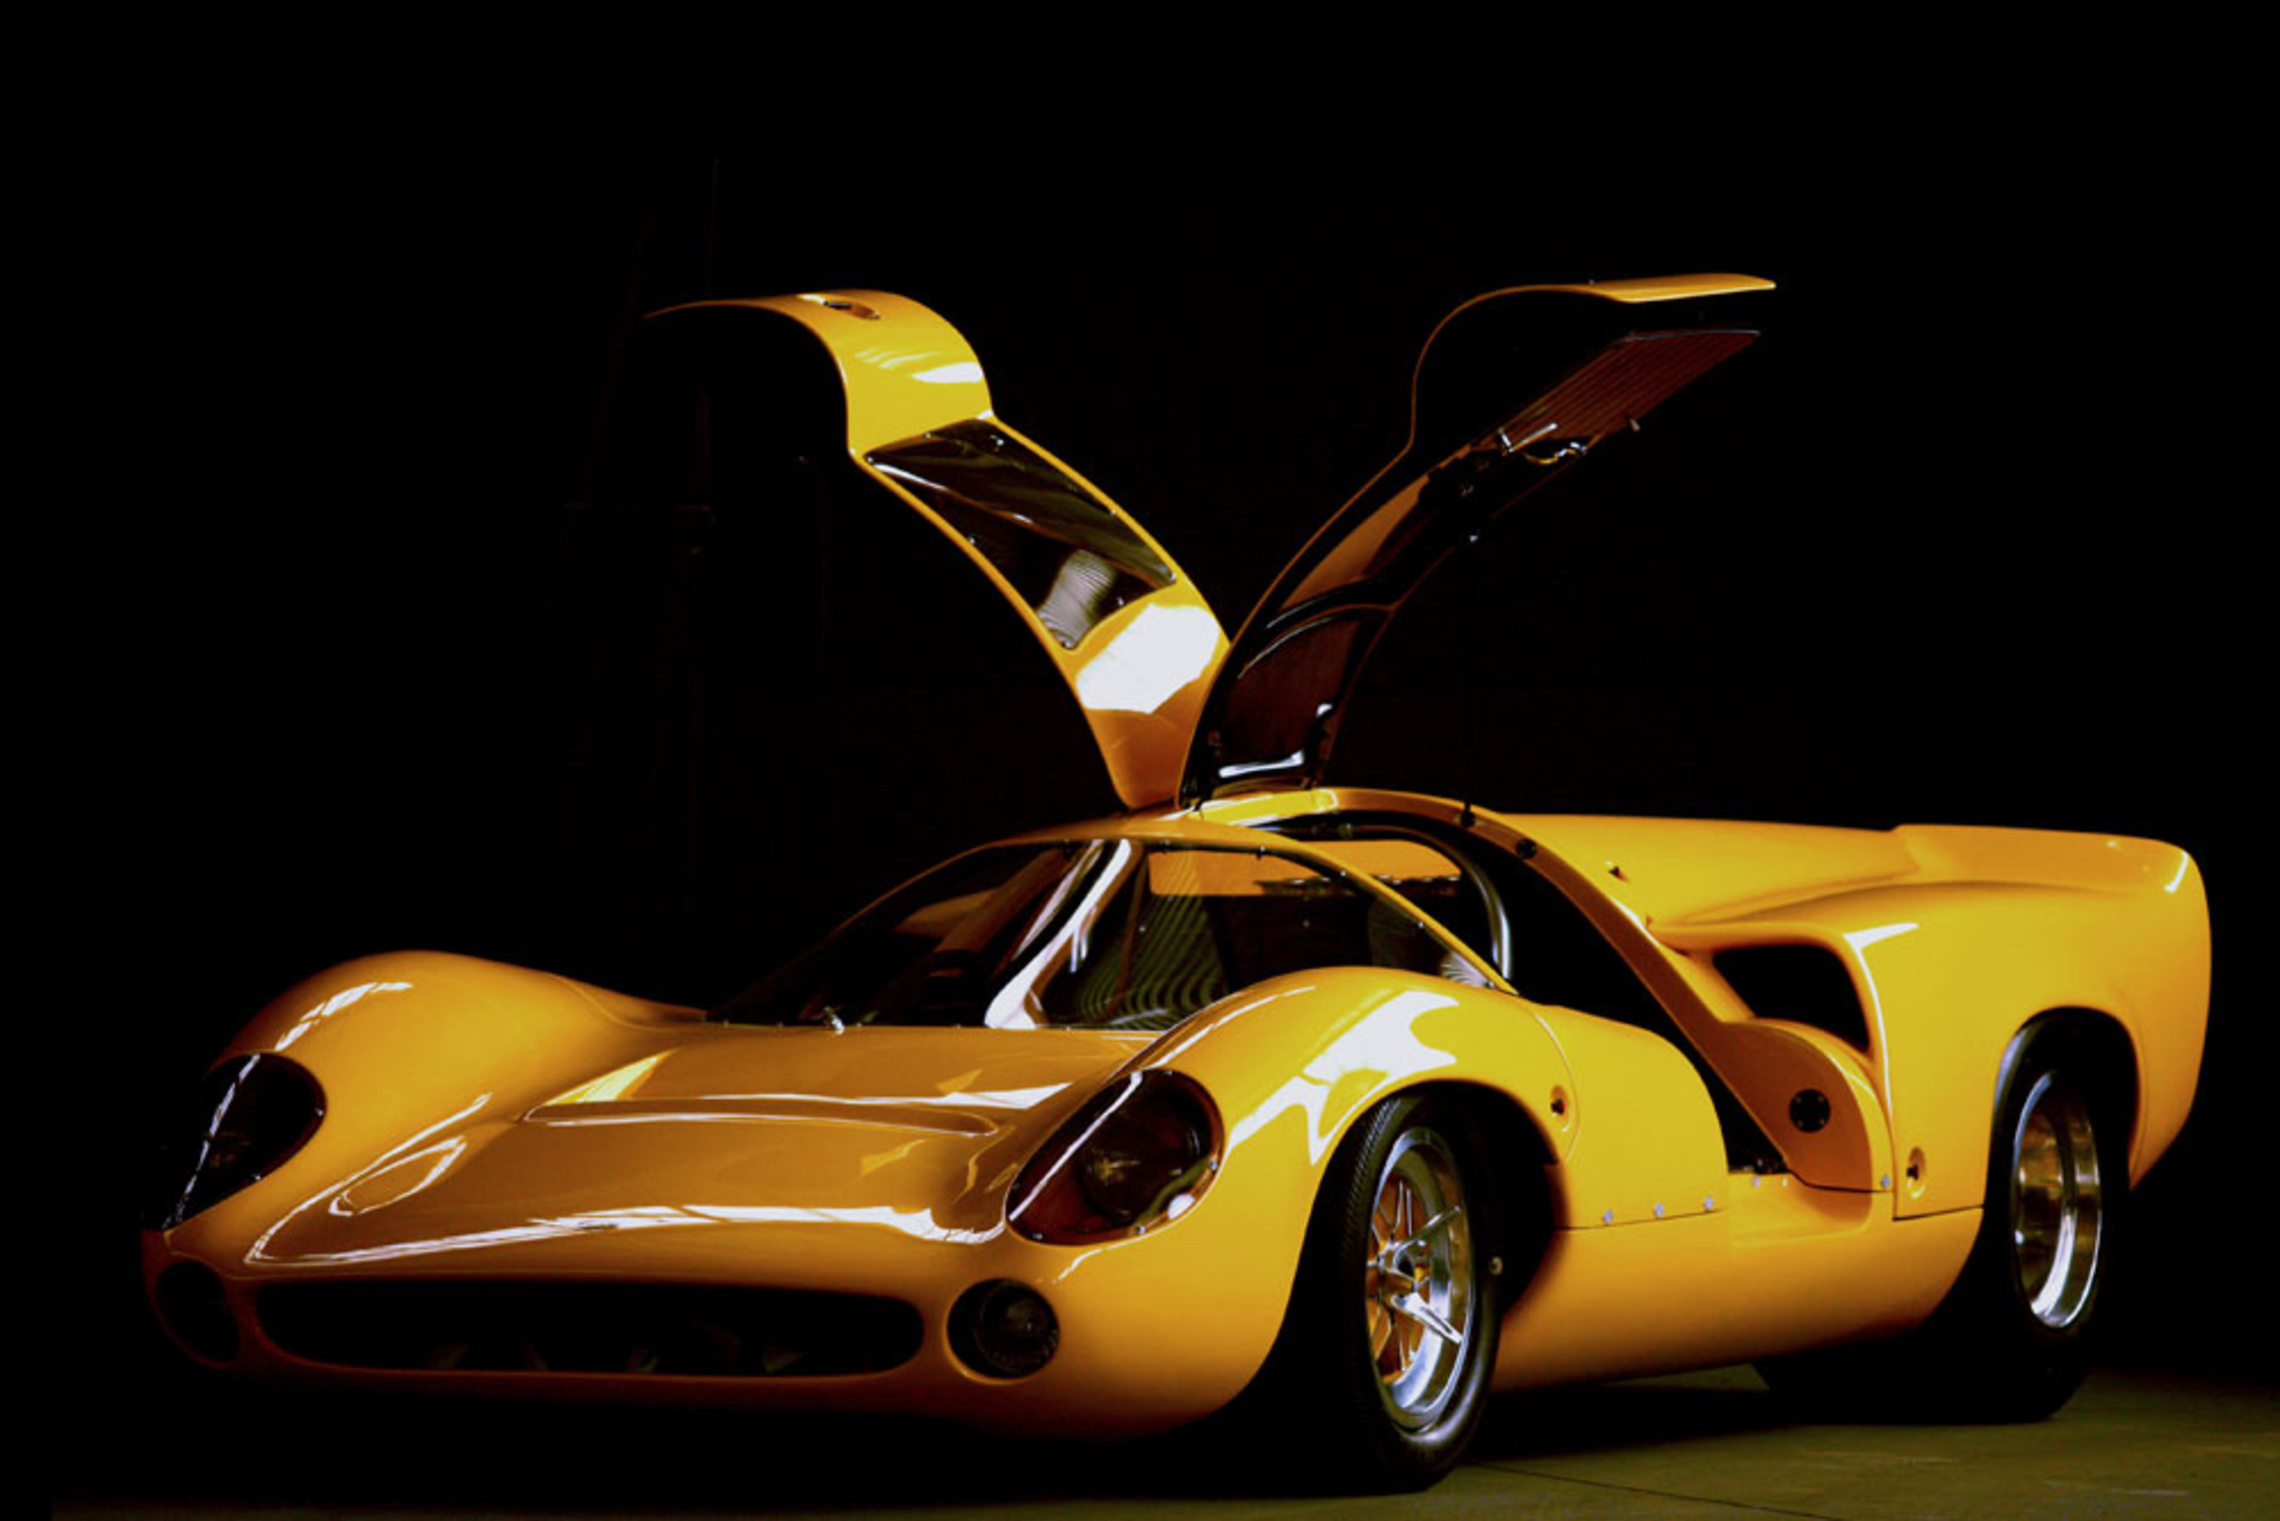 Lola T165-70 Custom, Concours Winning CanAm road car - Road & Track, Cover car